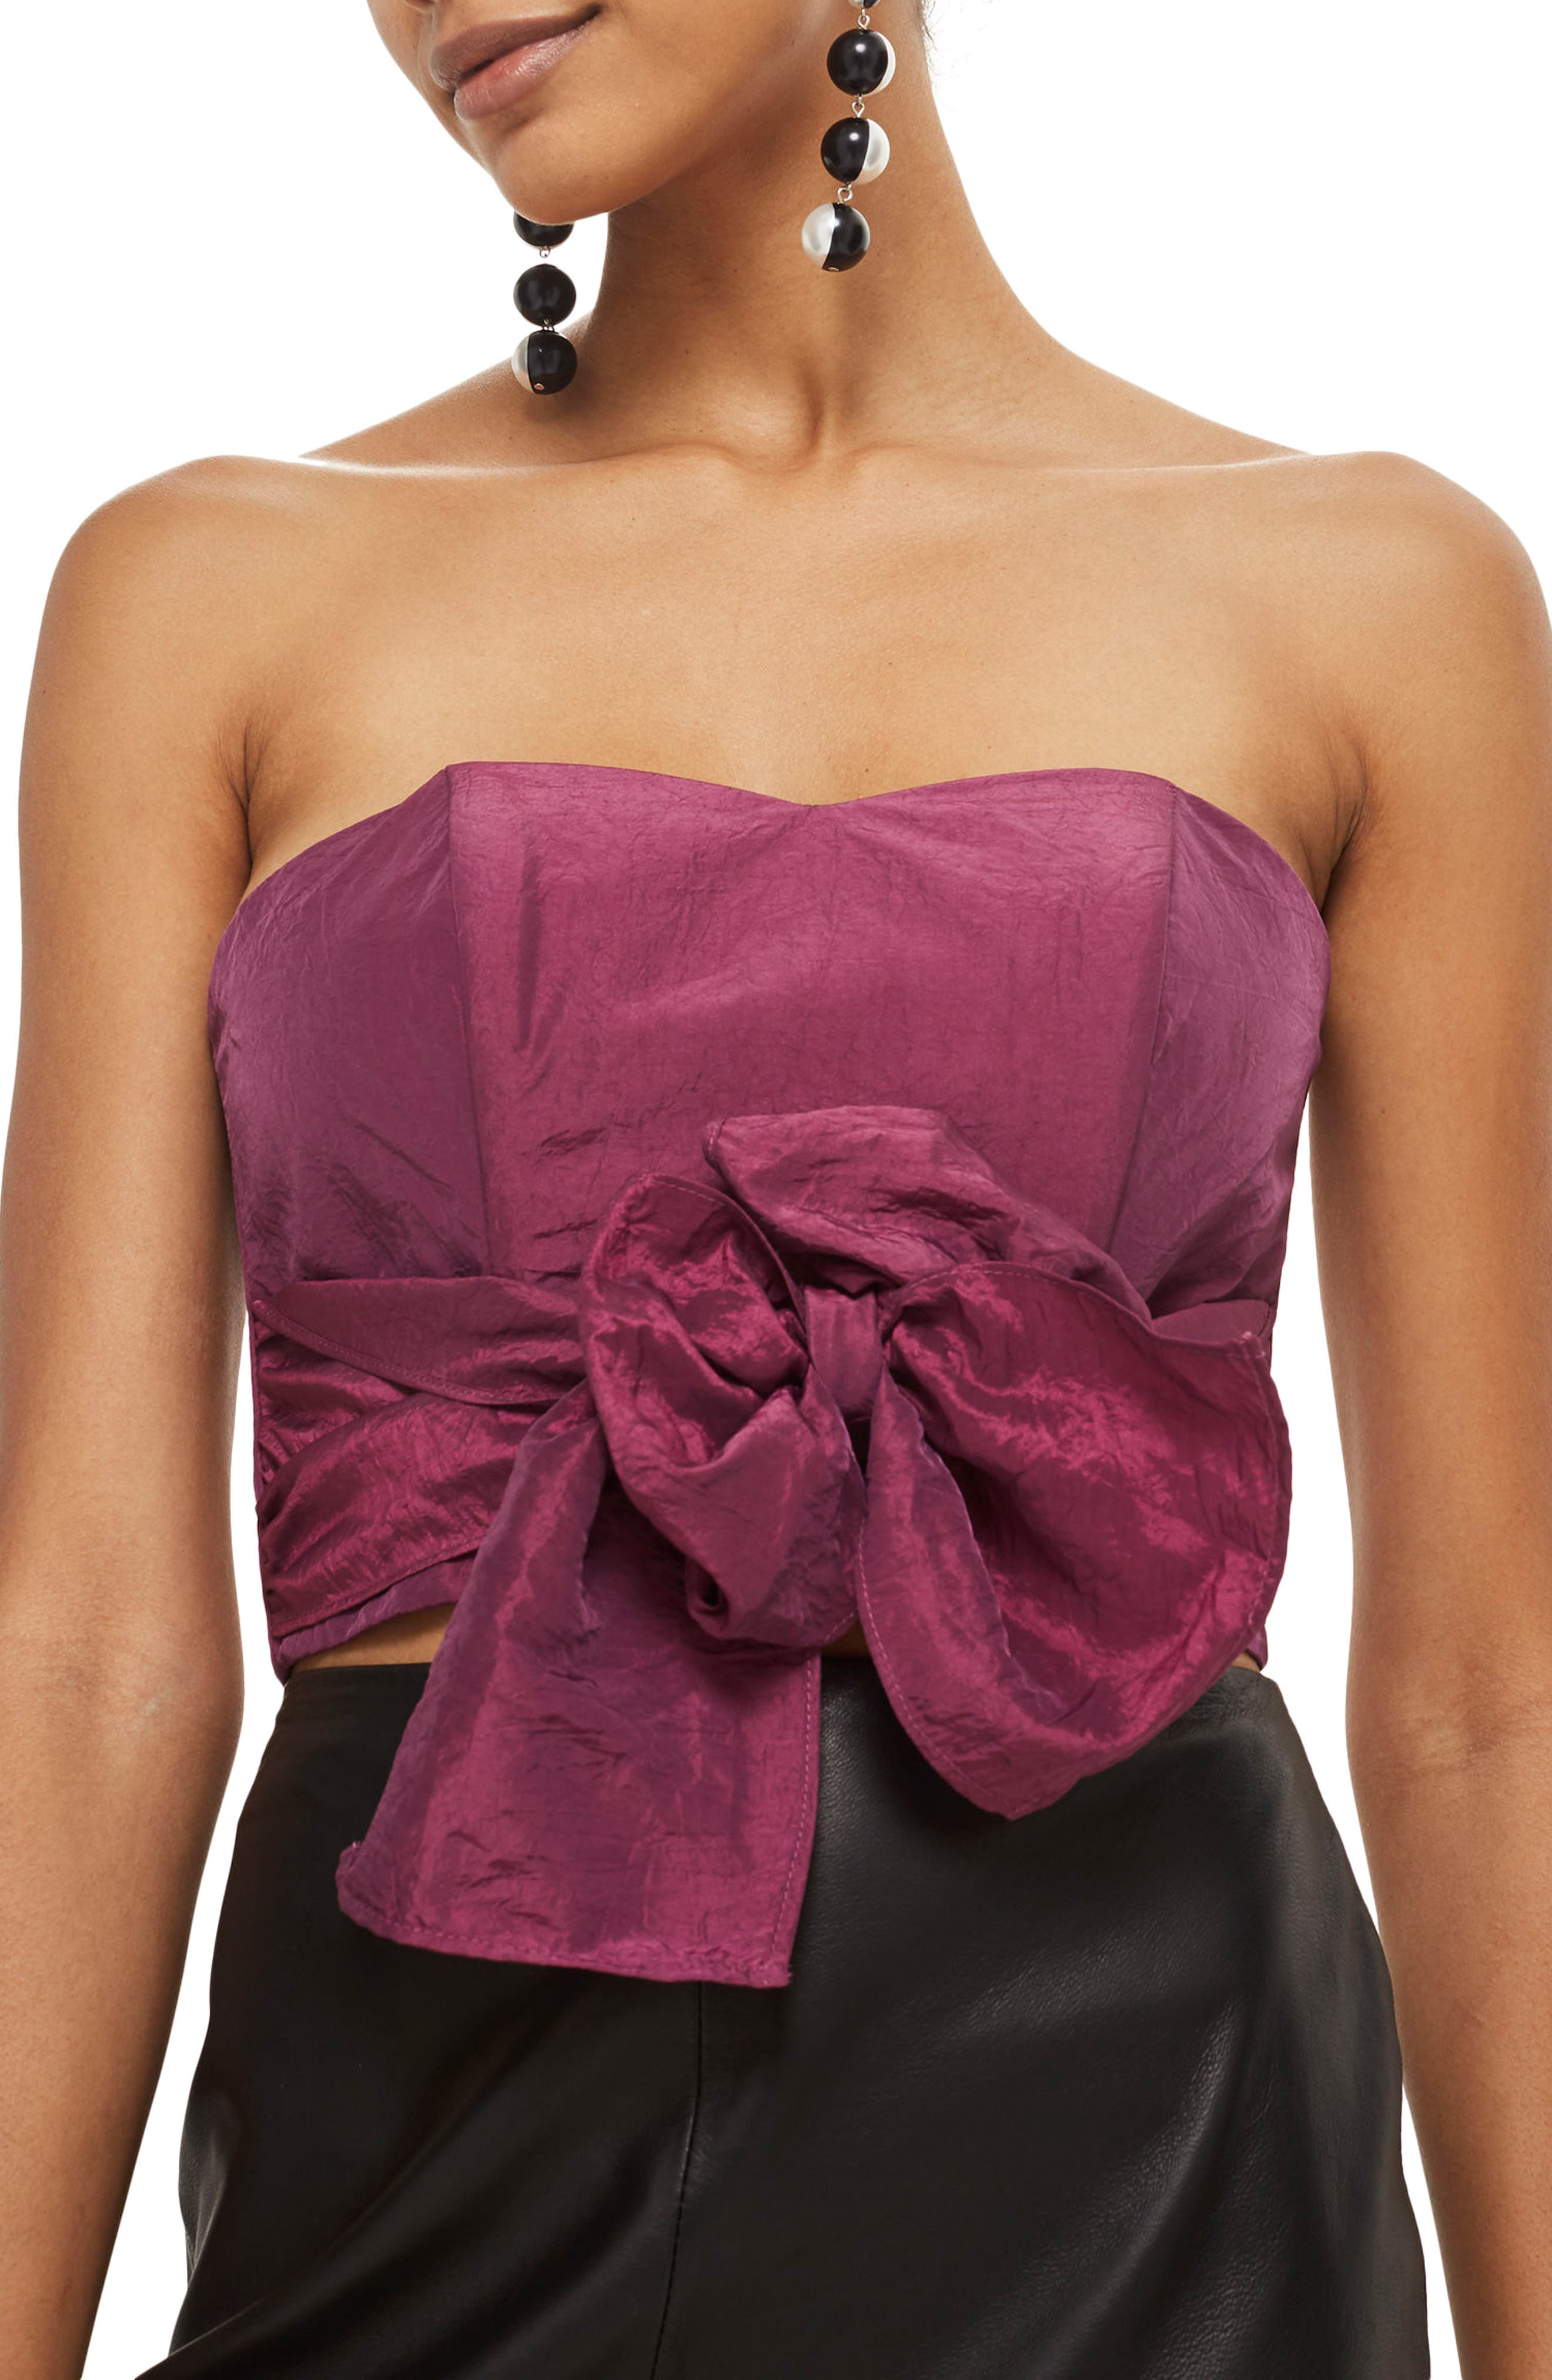 Taffeta Sweetheart Bandeau Tie Blouse,                             Main thumbnail 1, color,                             651